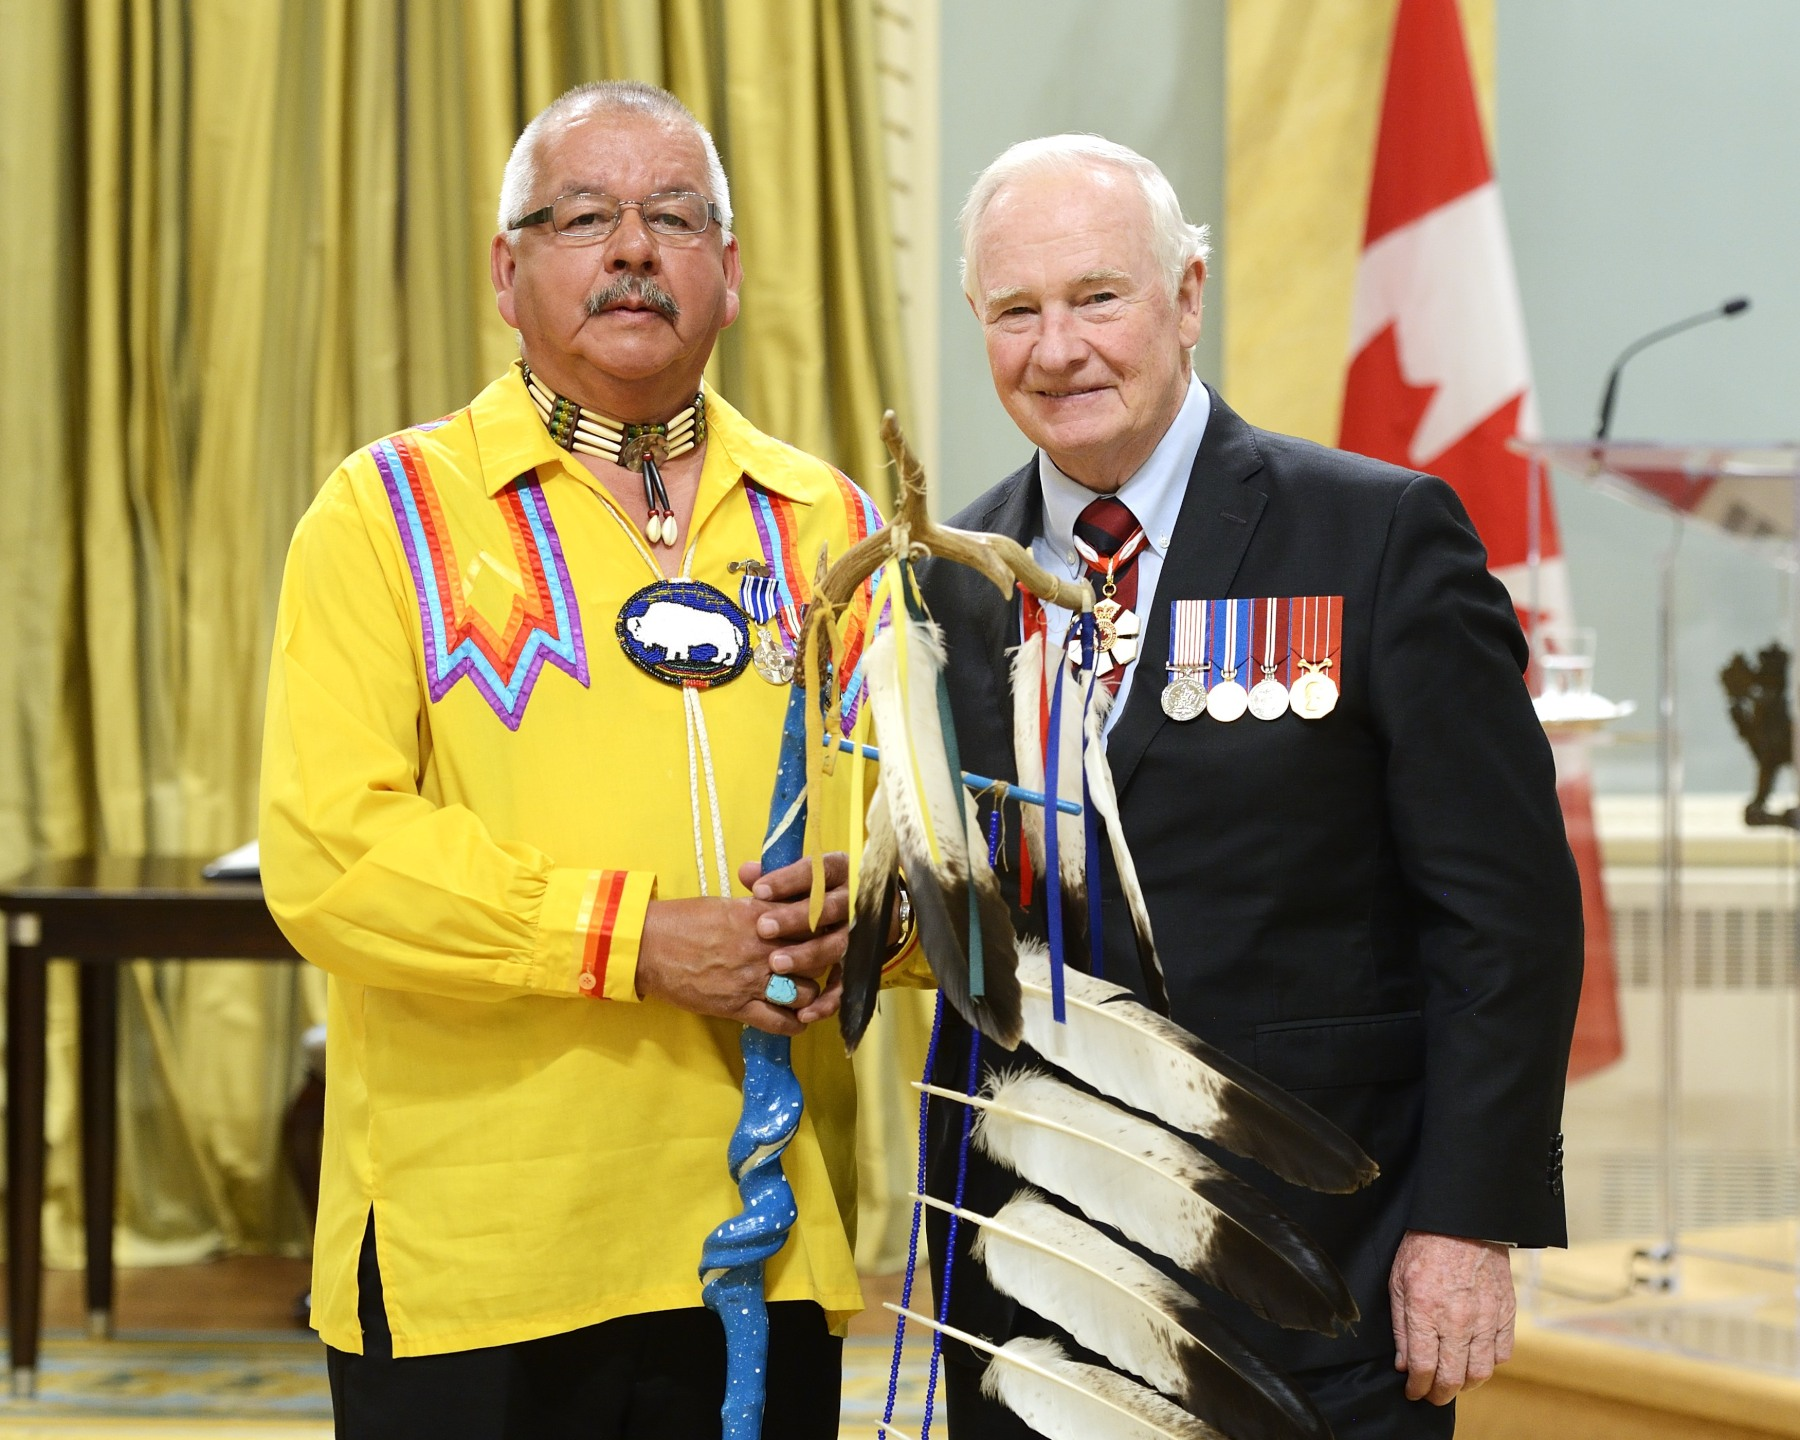 An Elder from the Shawanaga First Nation, Vincent Charles Pawis, O.Ont., M.S.M. (Nobel, Ontario), established the White Buffalo Road Healing Lodge where at-risk Aboriginal youth engage in counselling sessions, workshops, healing circles and sweat lodge ceremonies. This Indigenous-led, non-profit organization instills pride and self-confidence in the community and promotes positive lifestyle changes through connection with cultural heritage.